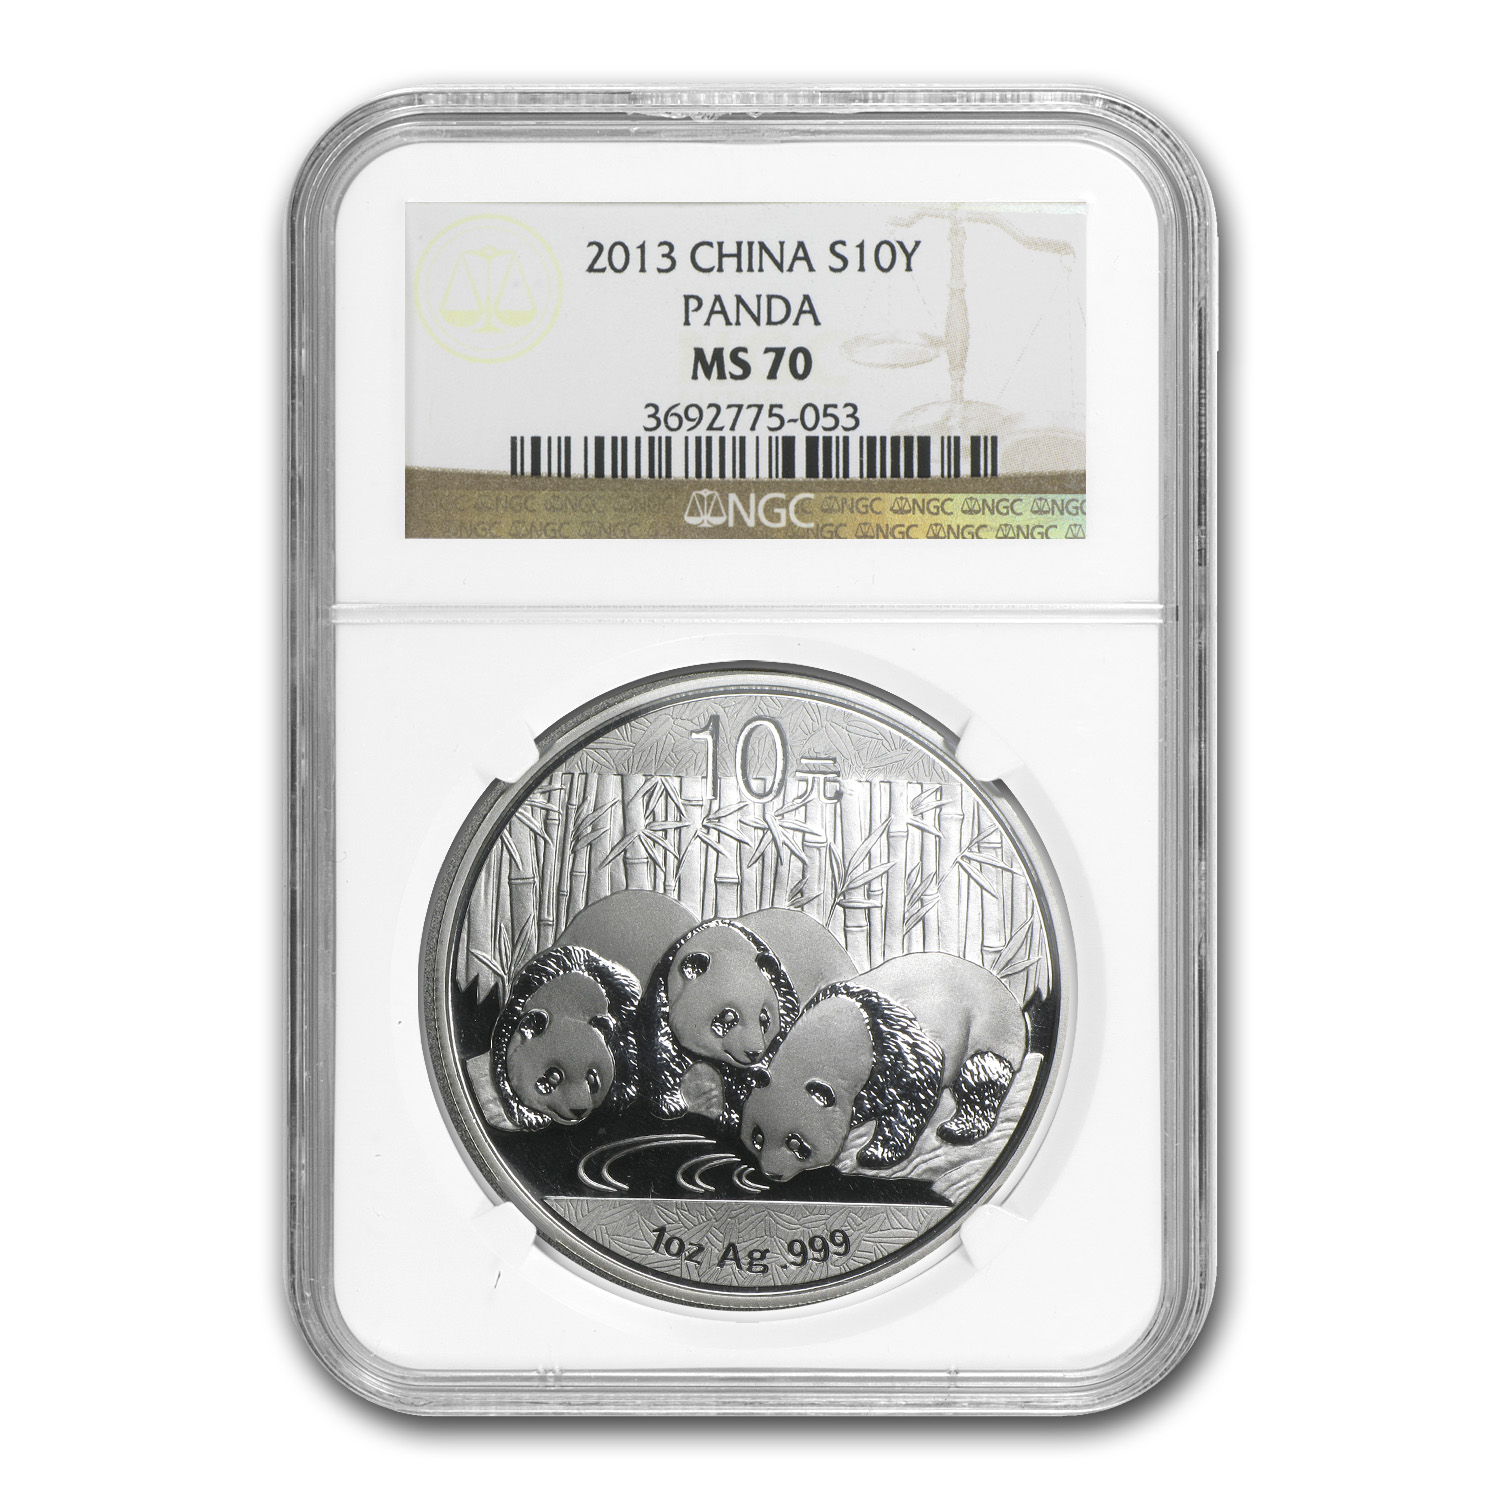 2013 China 1 oz Silver Panda MS-70 NGC